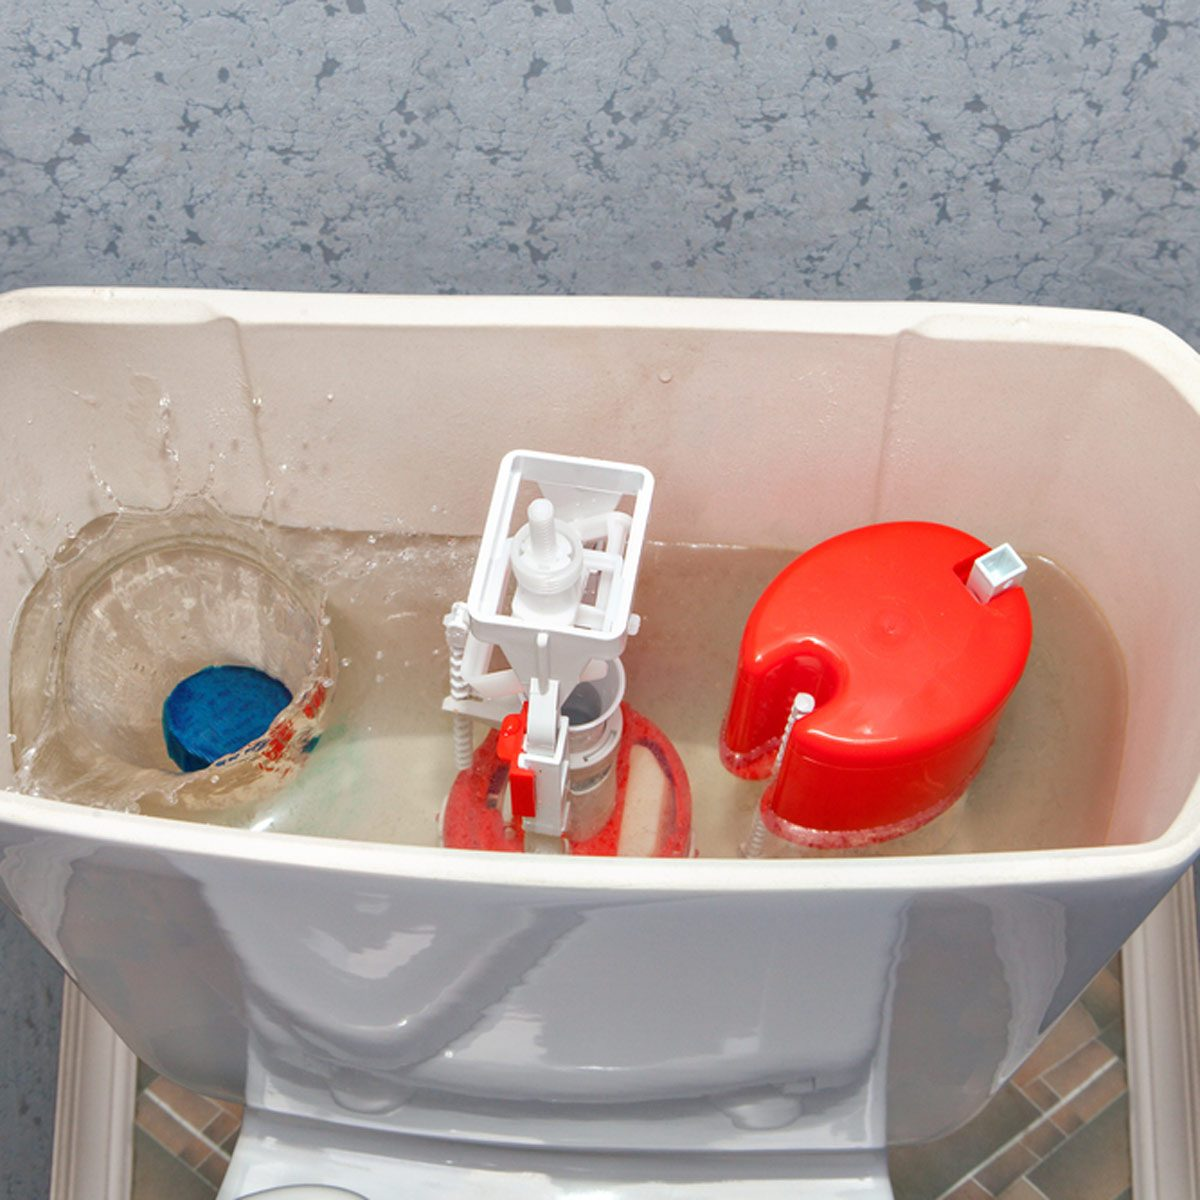 12 Things Your Plumber Wants You To Know